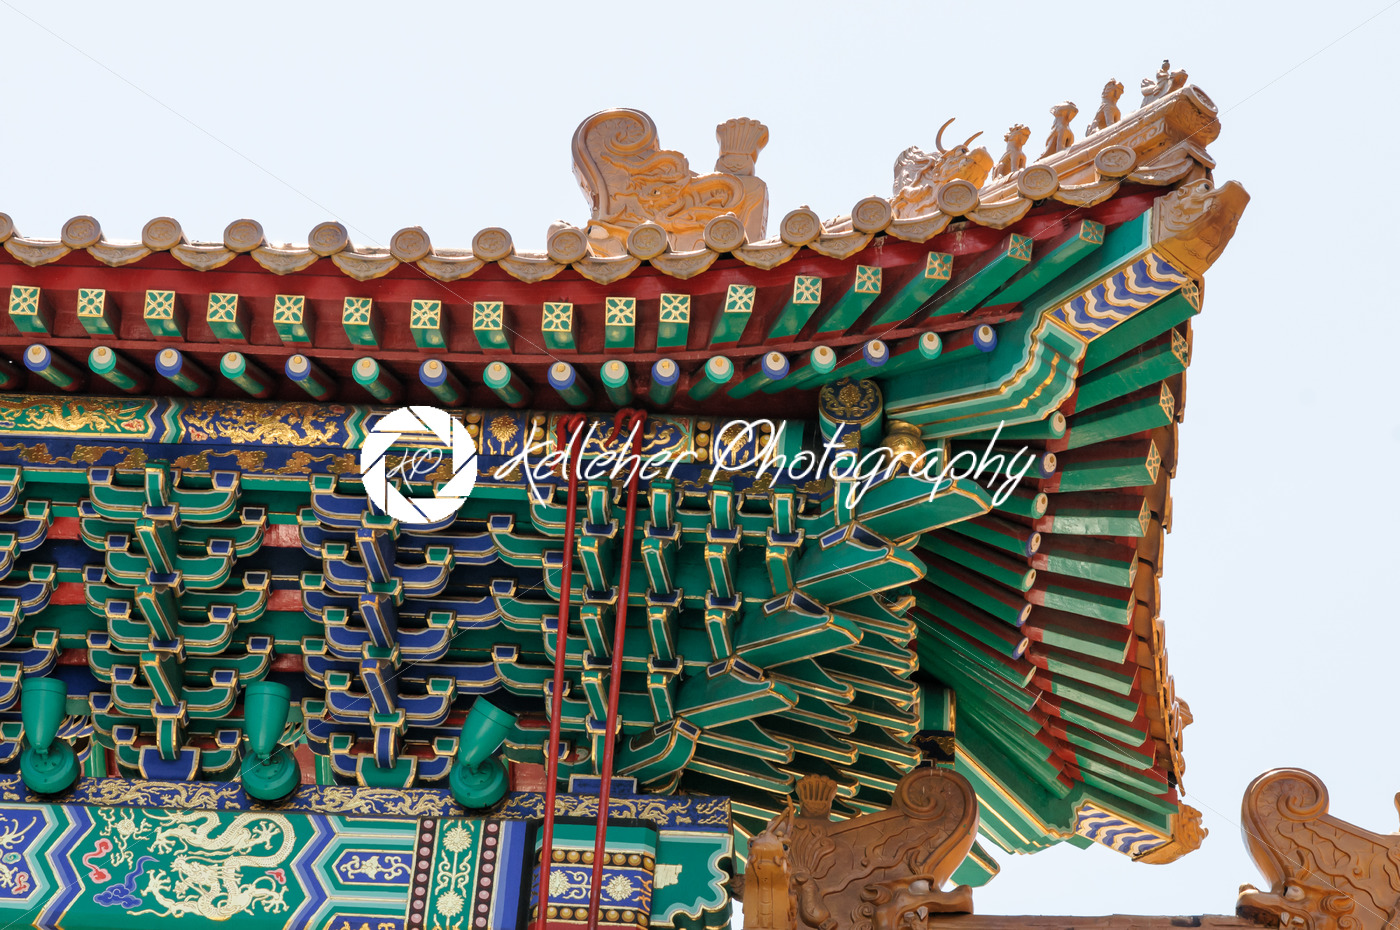 PHILADELPHIA, PA – MAY 14: The Arch in the Chinatown section of downtown Philadelphia on May 14, 2015 - Kelleher Photography Store